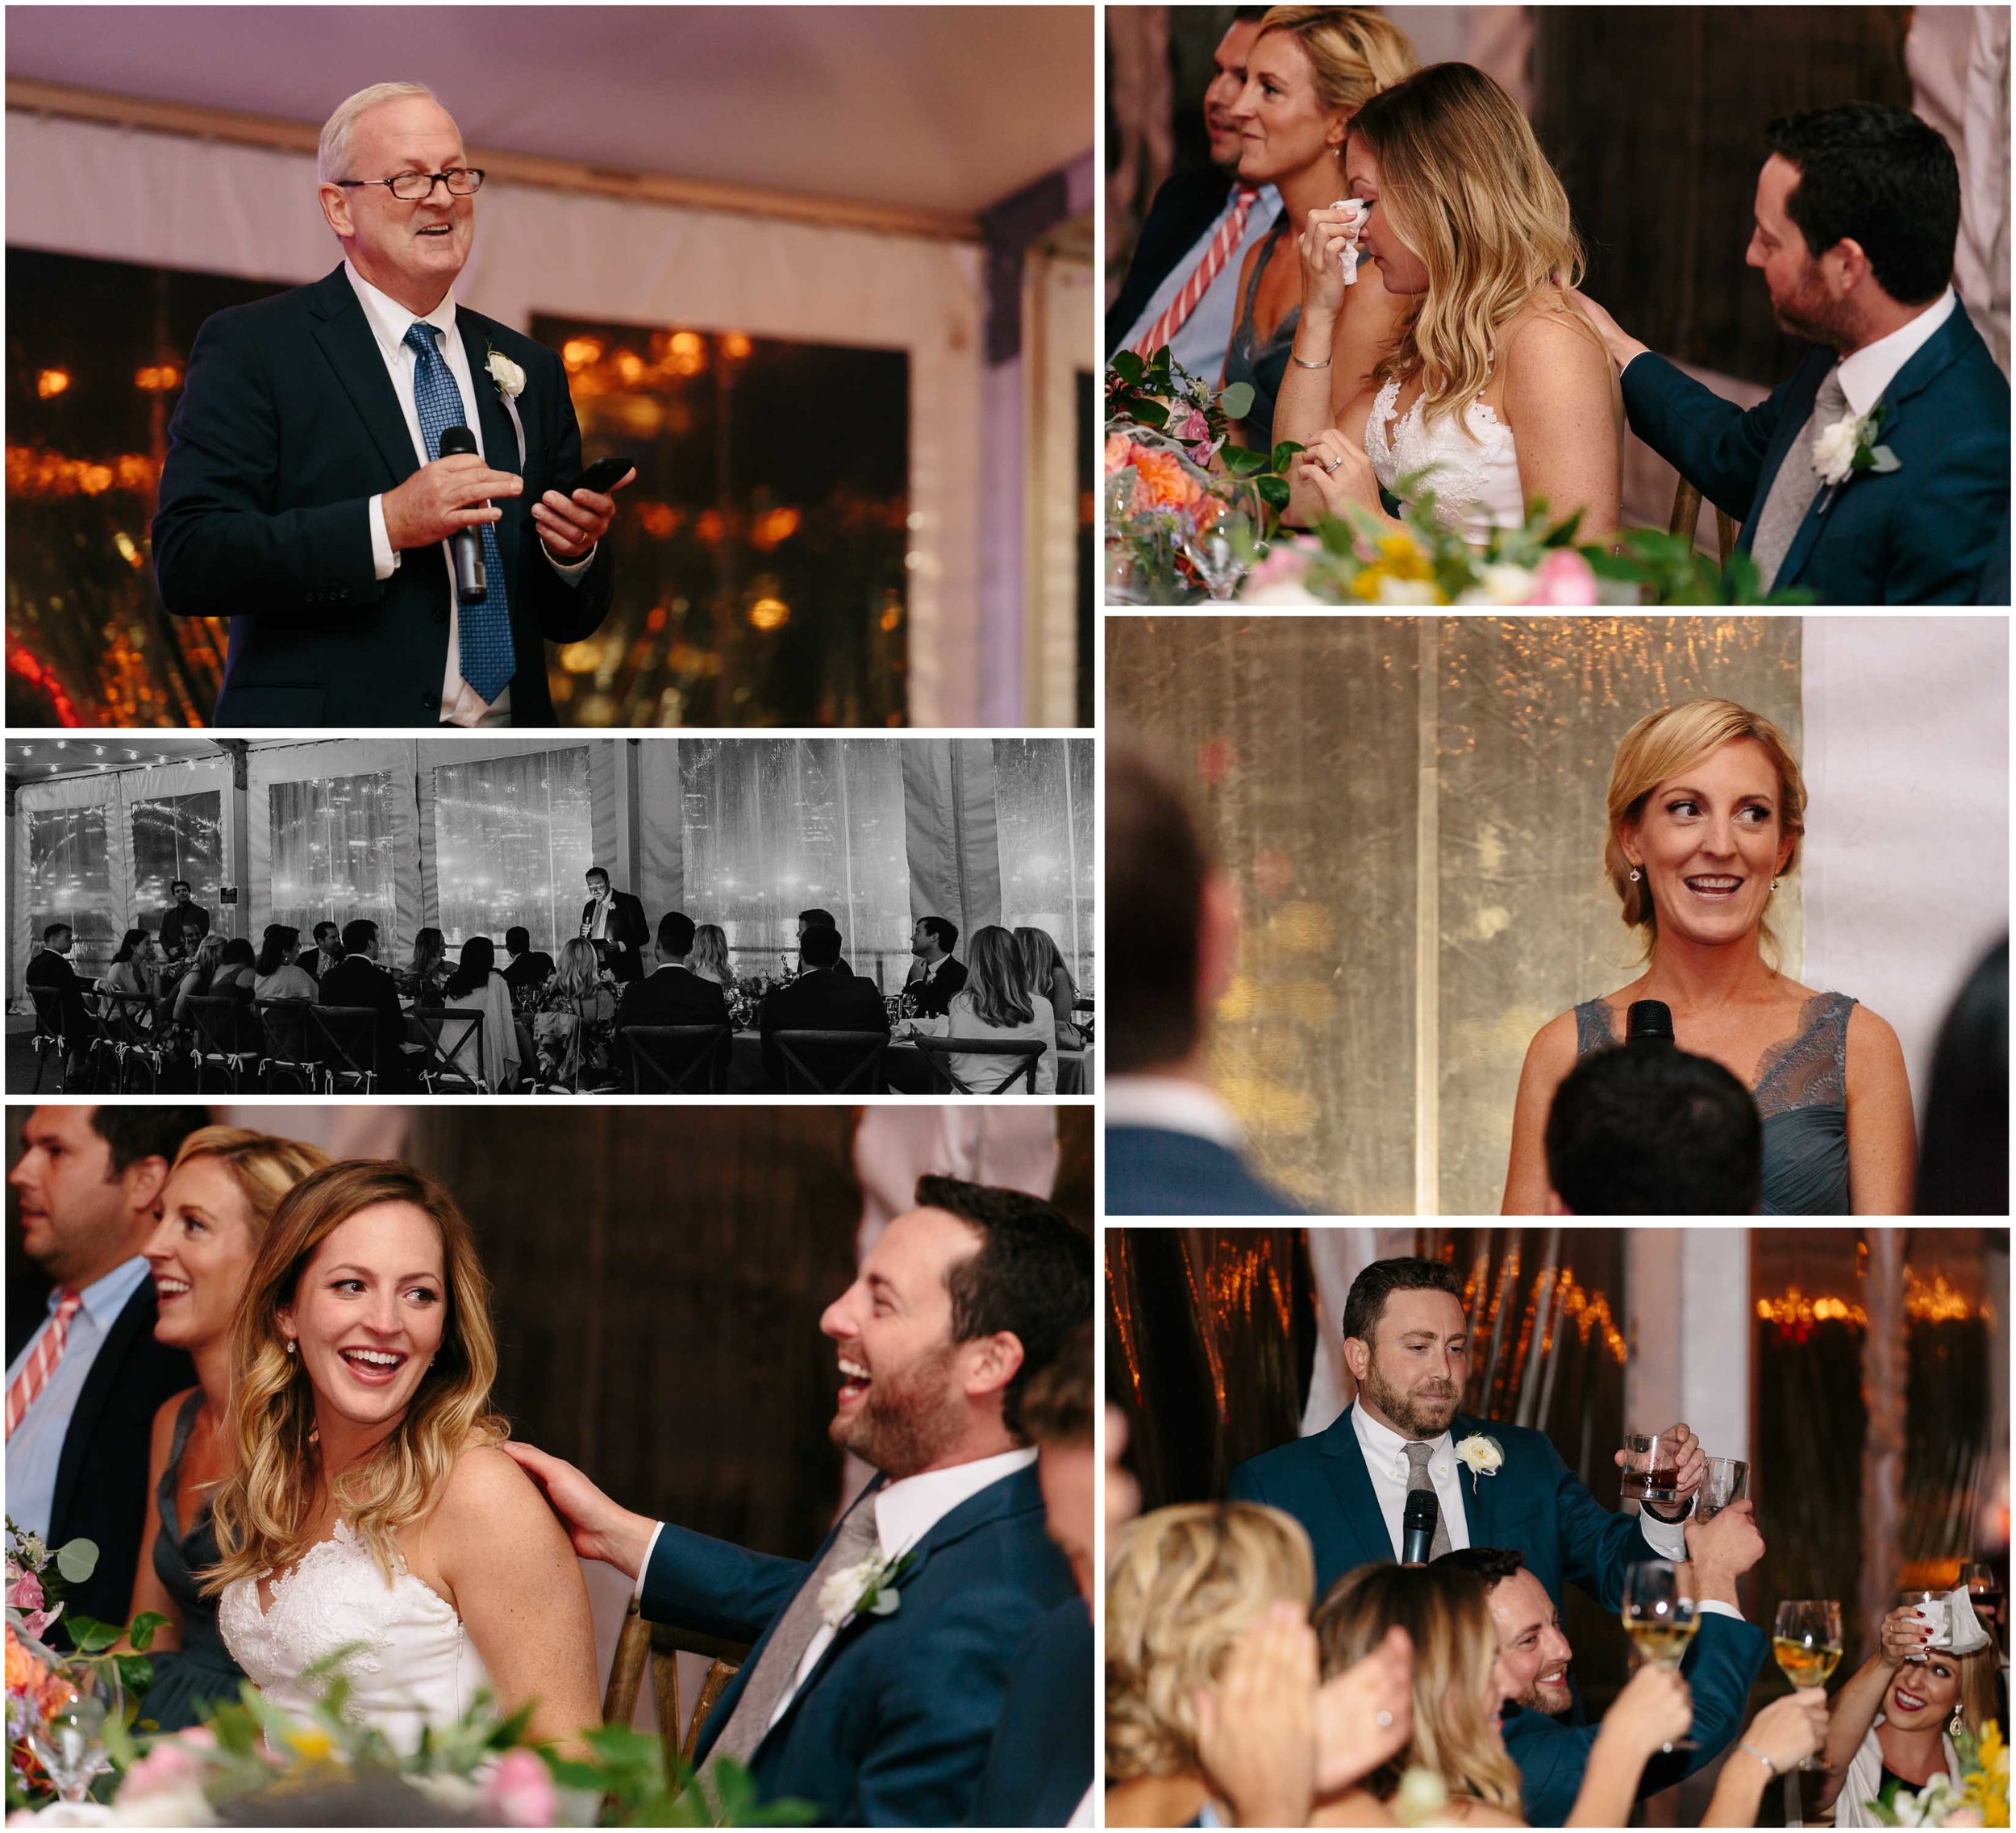 Nautical Massachusetts Jewish Wedding in the Boston Navy Yard reception toasts and speeches